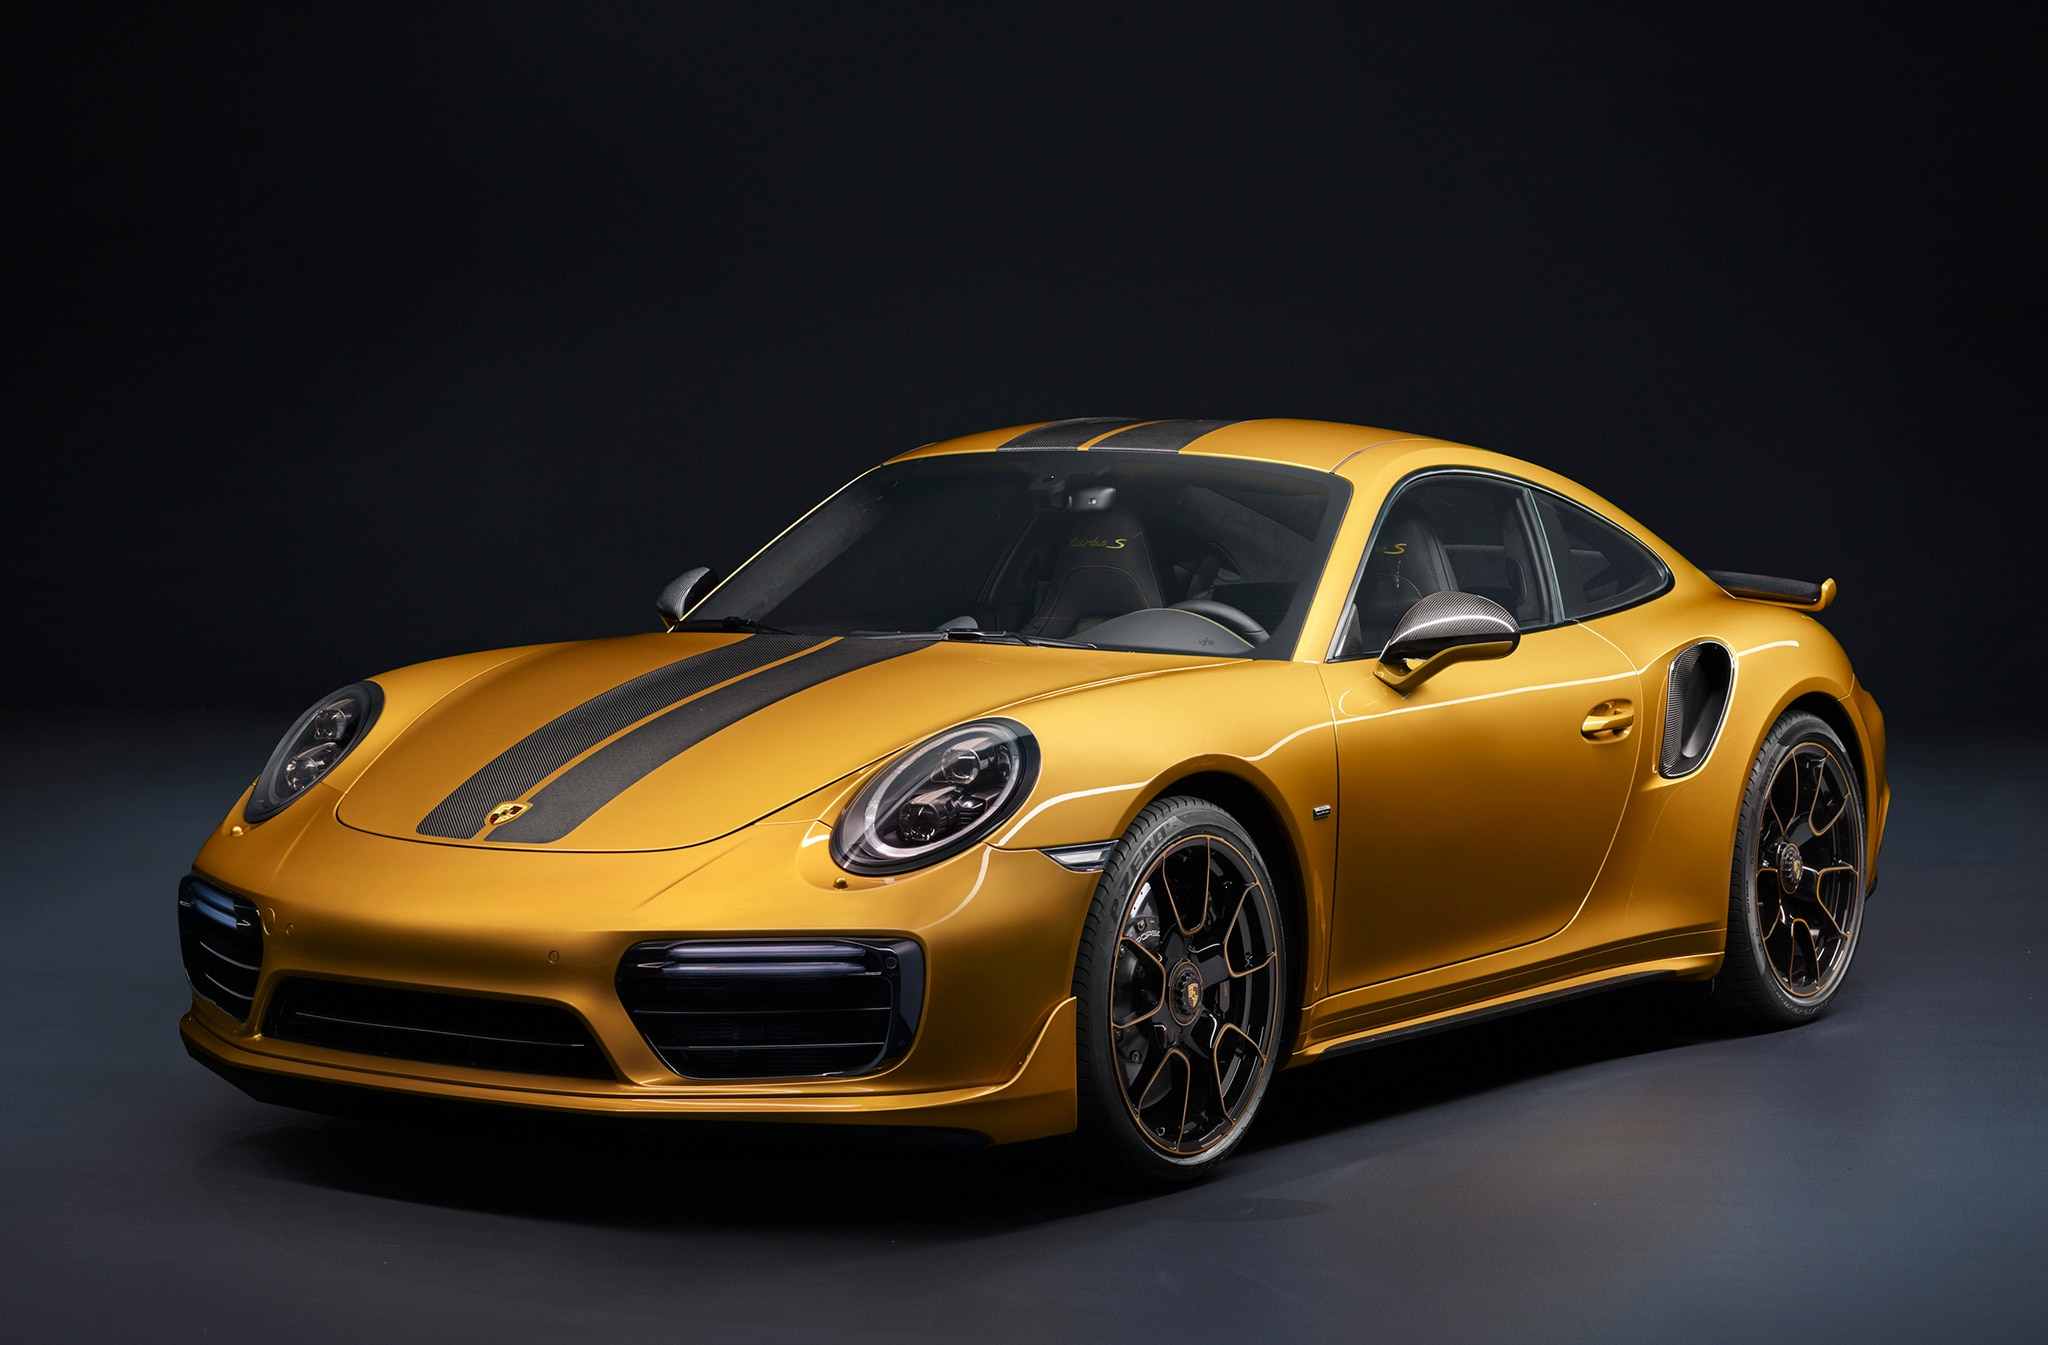 Porsche 911 Turbo S Exclusive Series Lead